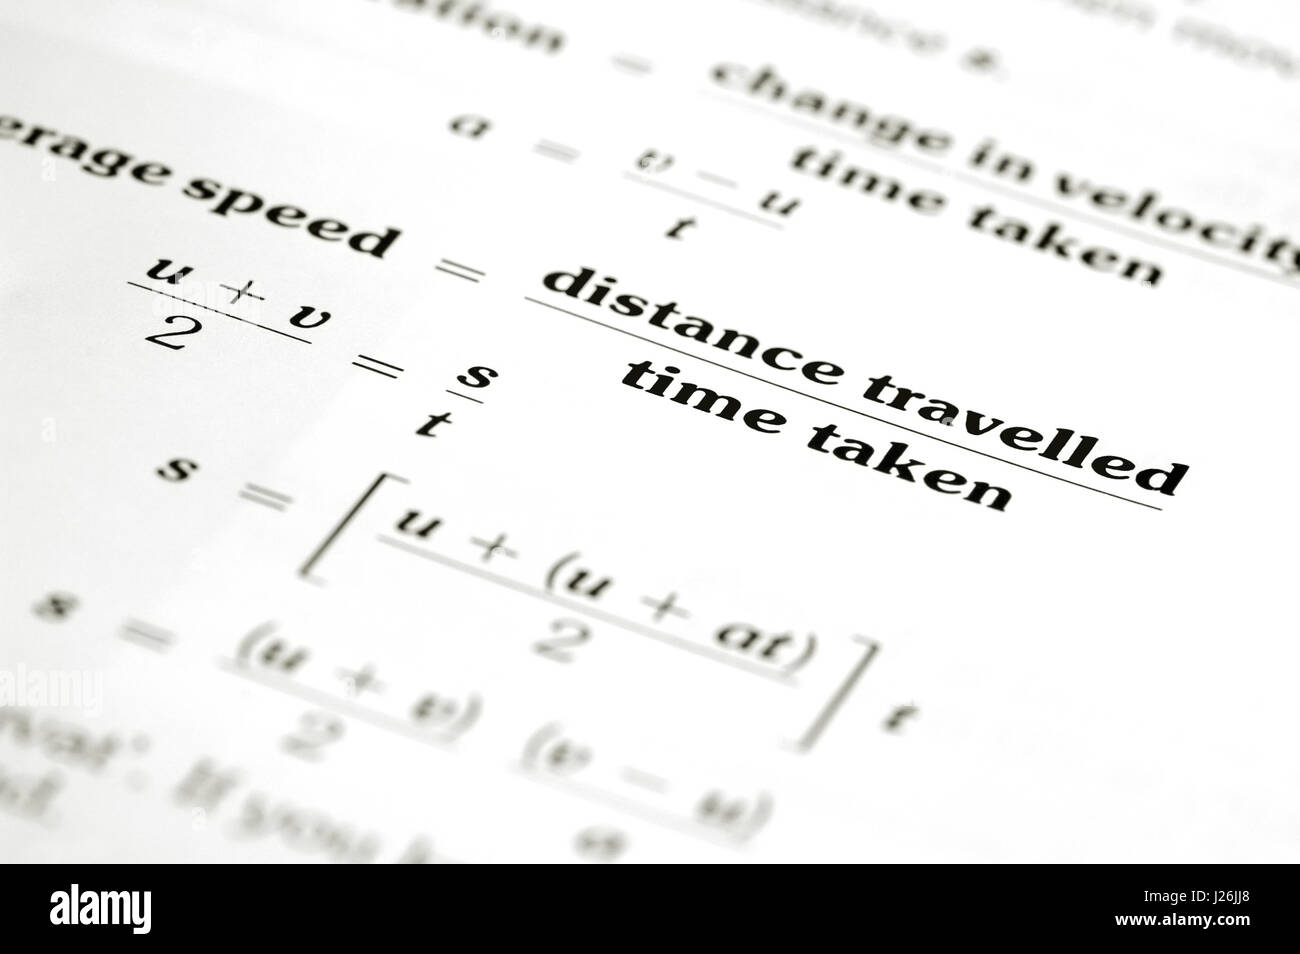 Math Equation Calculating Average Speed Of Distance Over